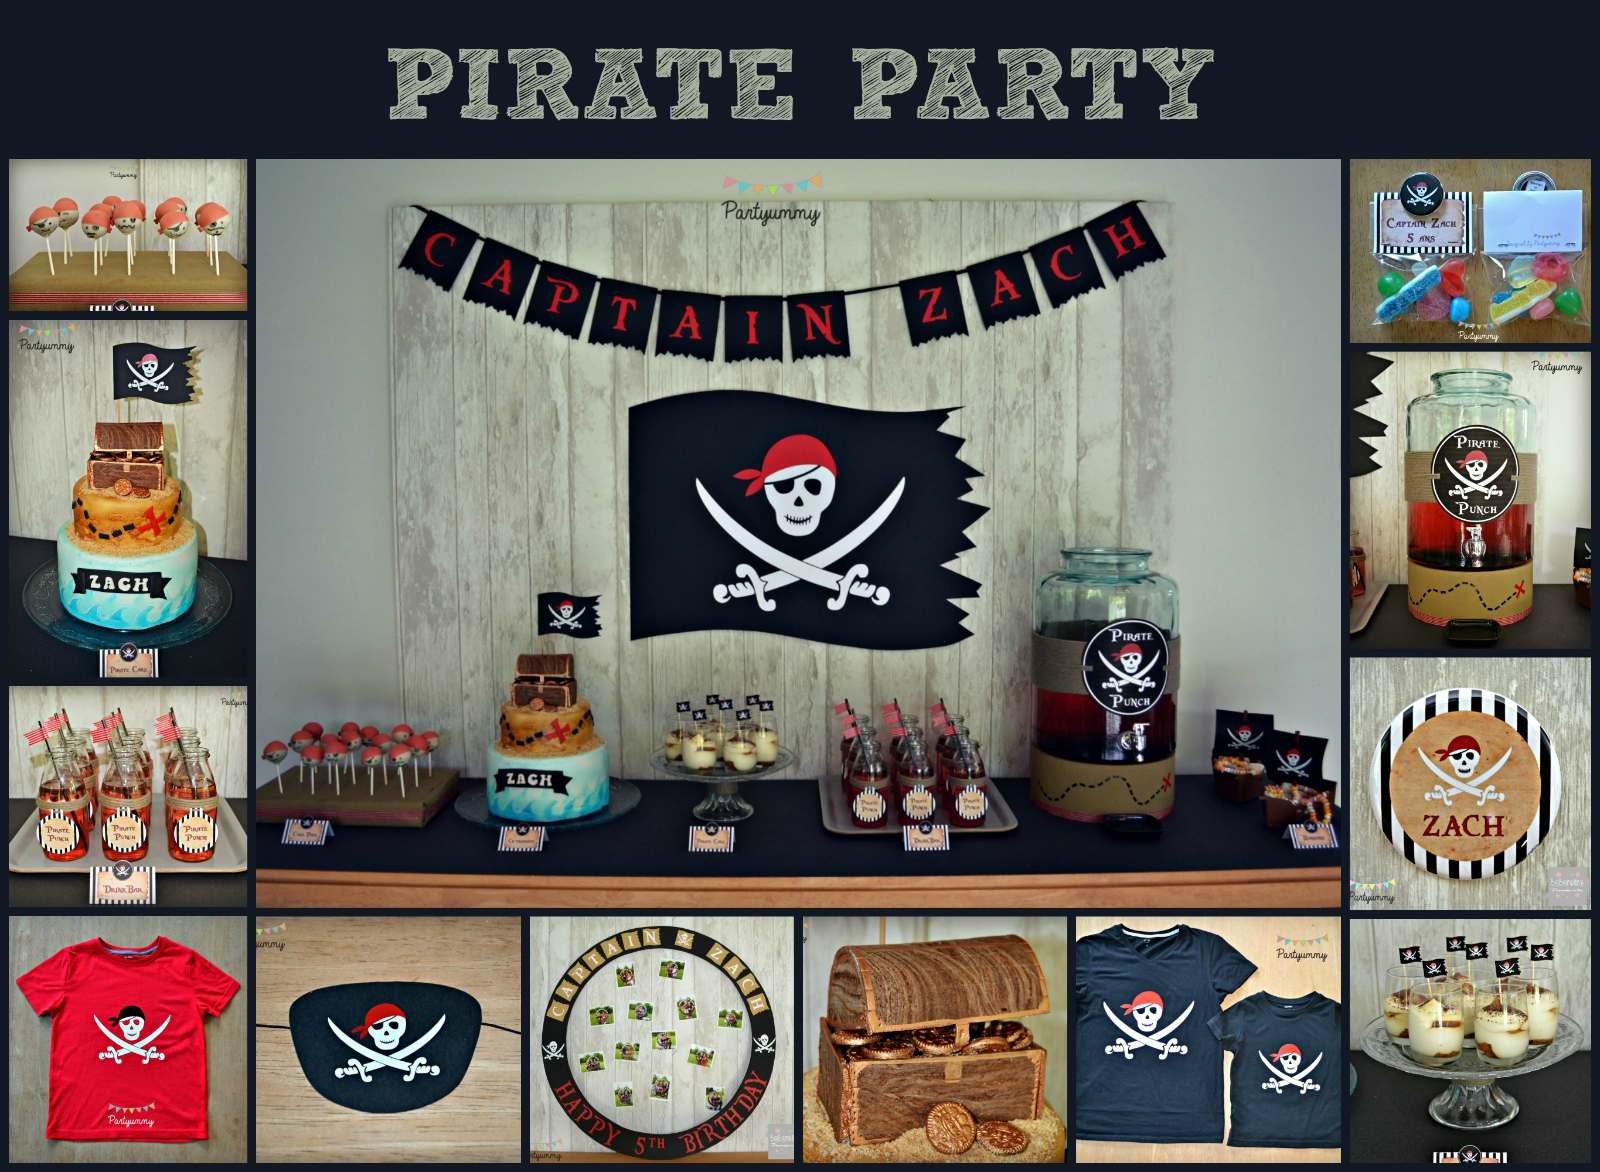 PirateParty2